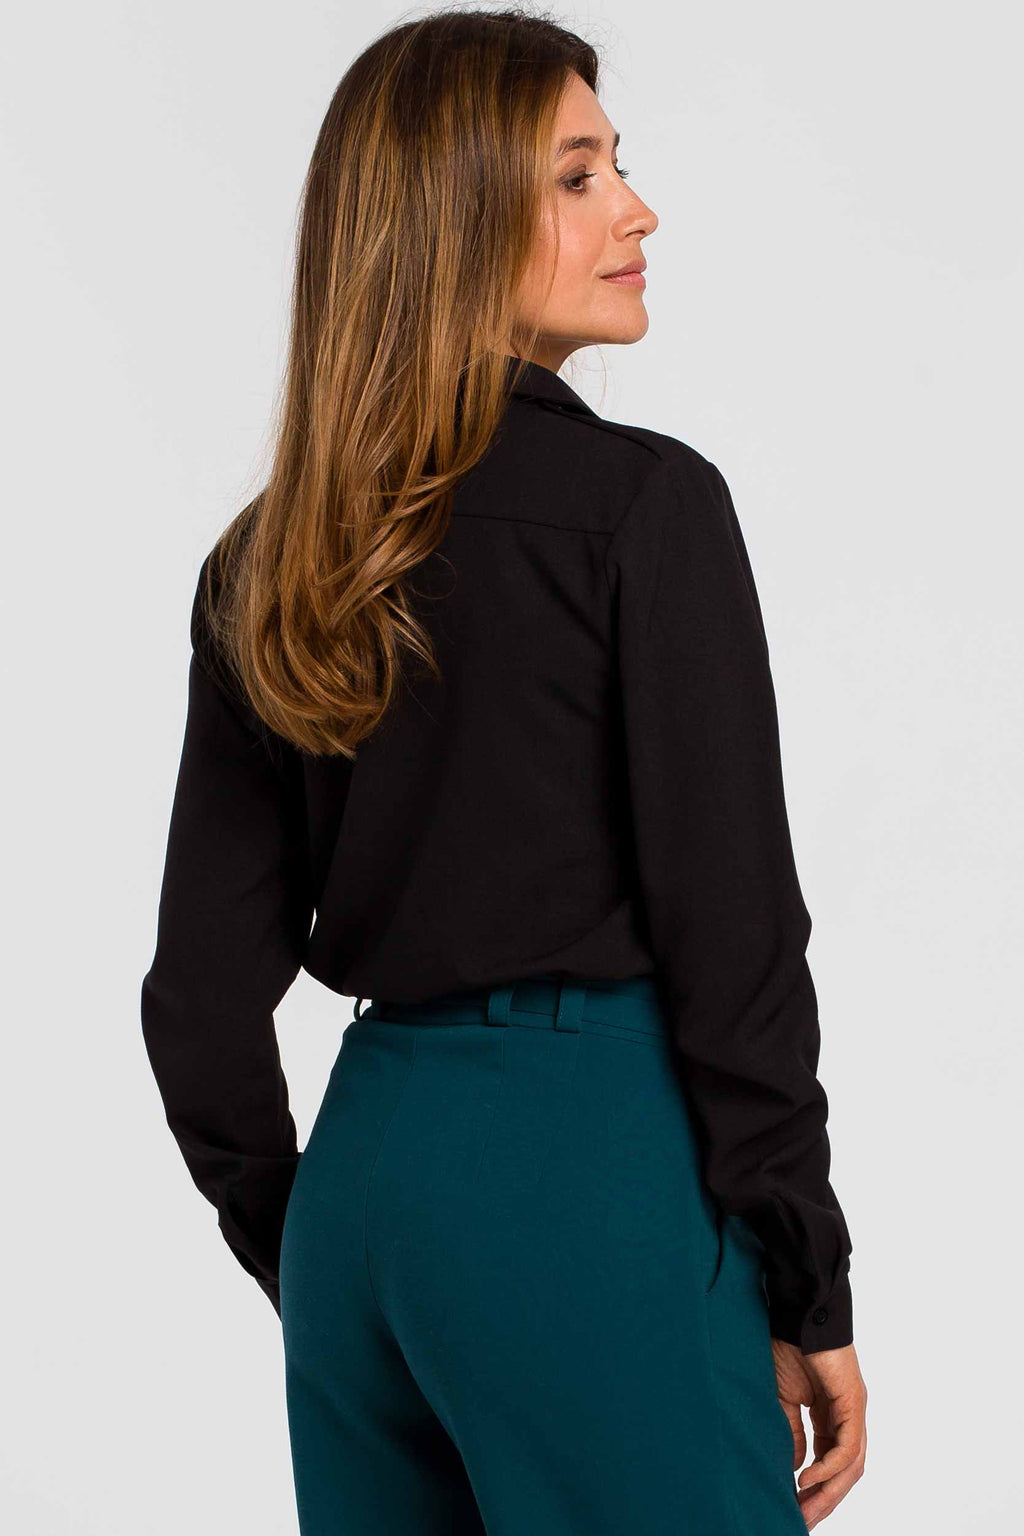 Black Long Sleeve Linen Blend Shirt With Shoulder Epaulets - So Chic Boutique